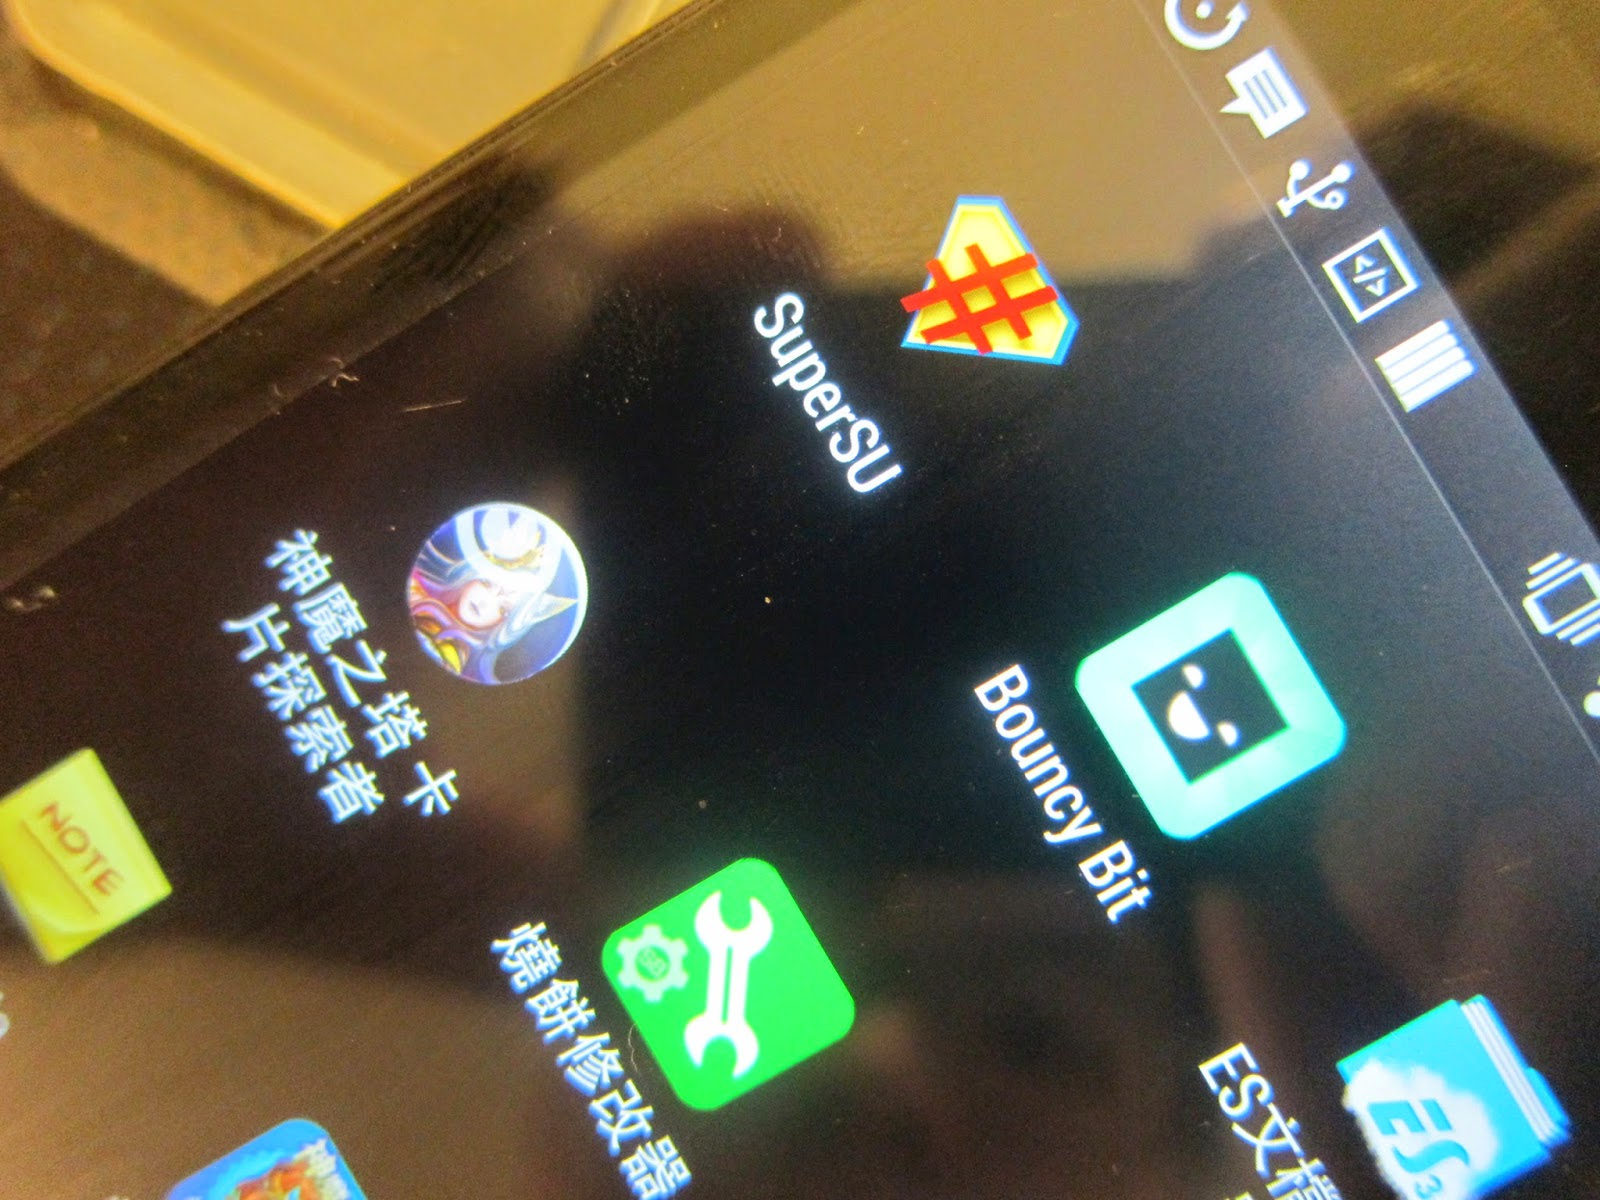 IMG 2339 - 【圖文教學】HTC Butterfly 4.3/4.4 解鎖+ROOT